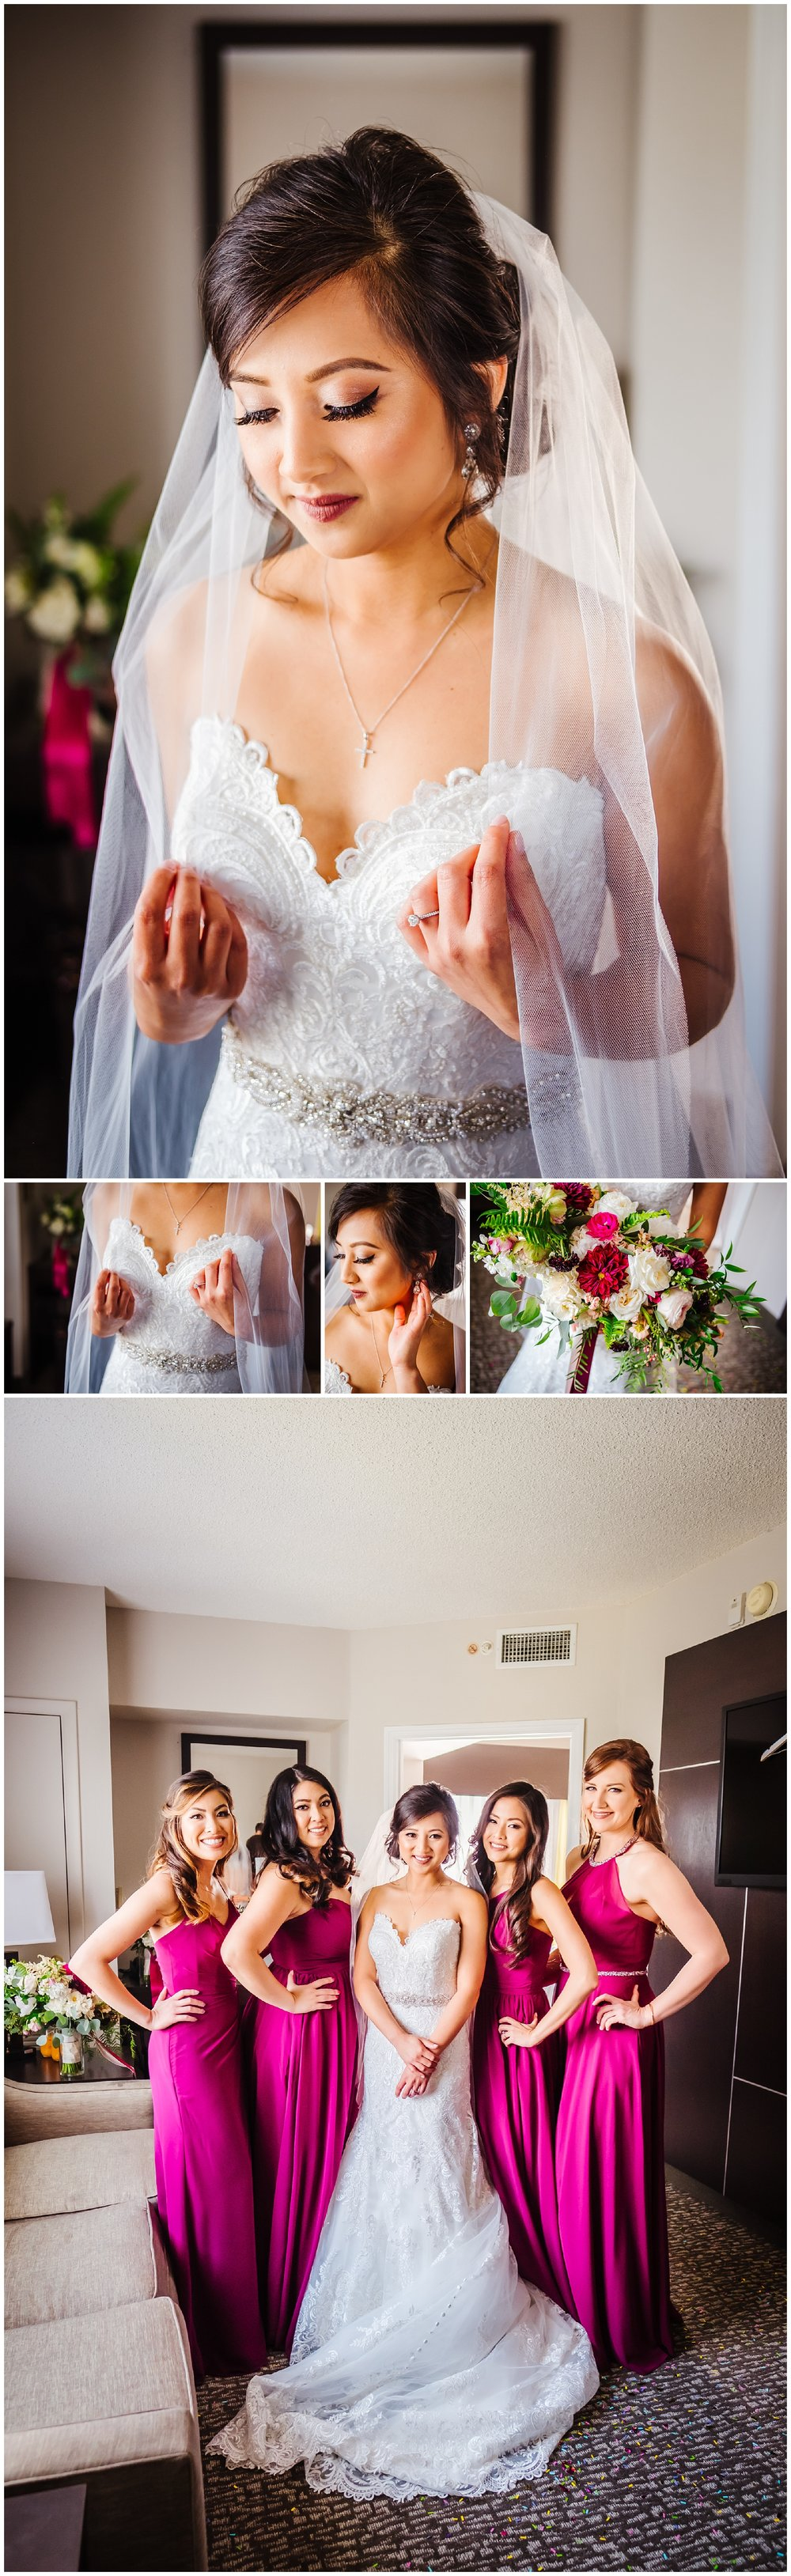 tampa-wedding-photographer-philipino-colorful-woods-ballroom-church-mass-confetti-fuscia_0016.jpg